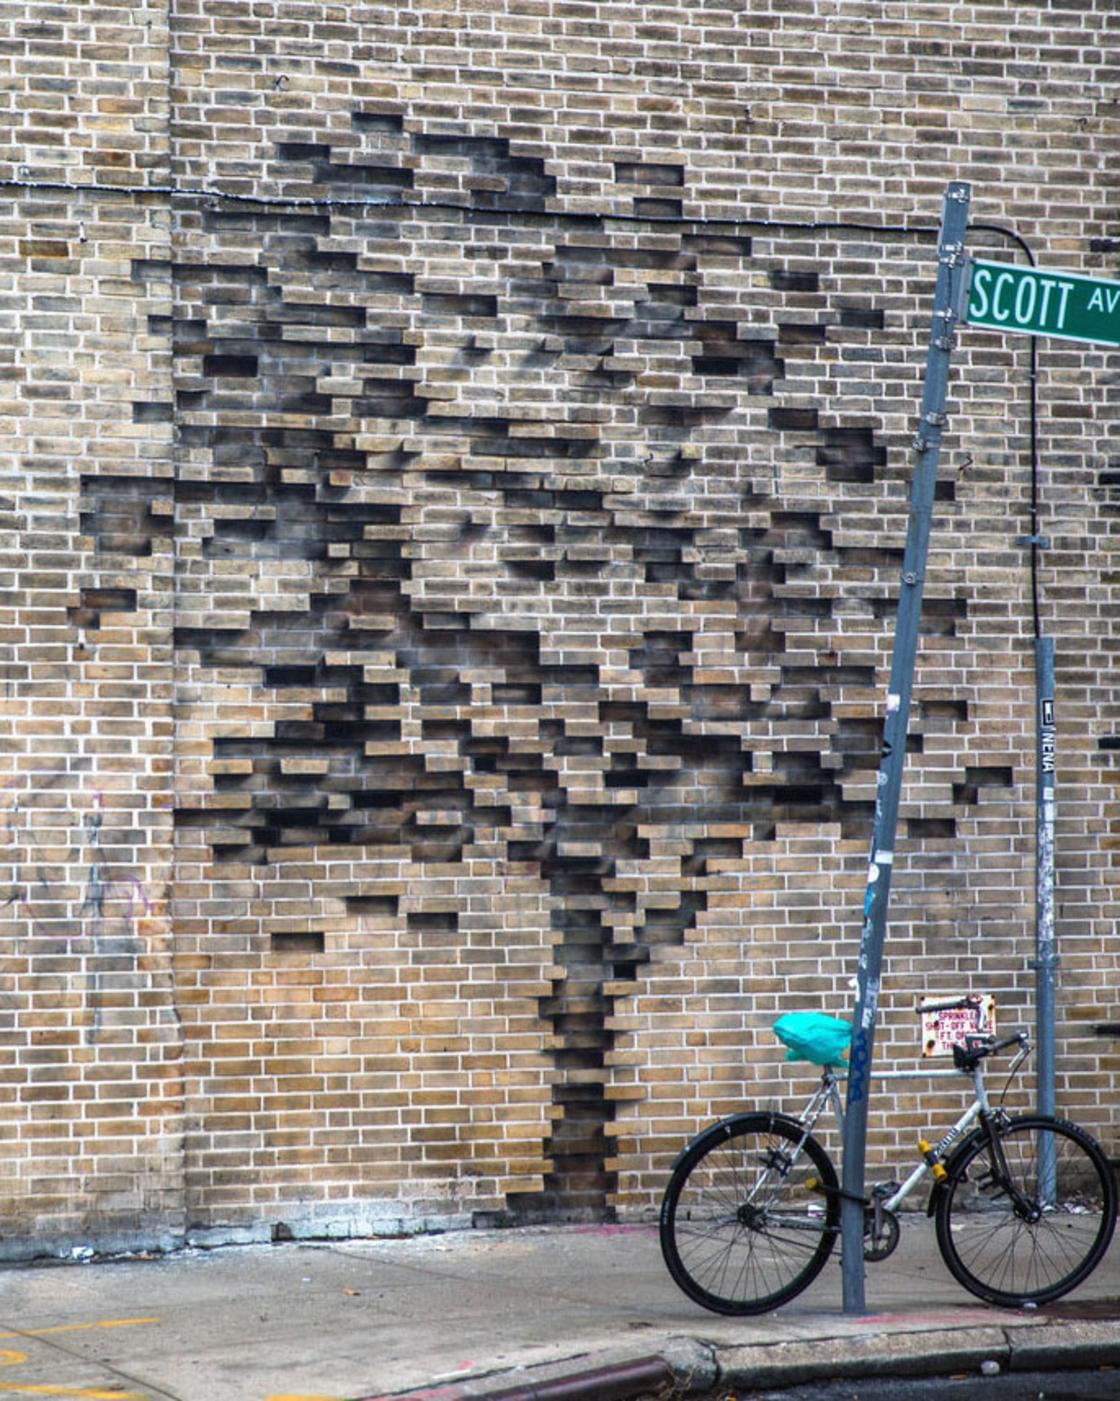 Pejac unveils two stunning optical illusions in the streets of New York